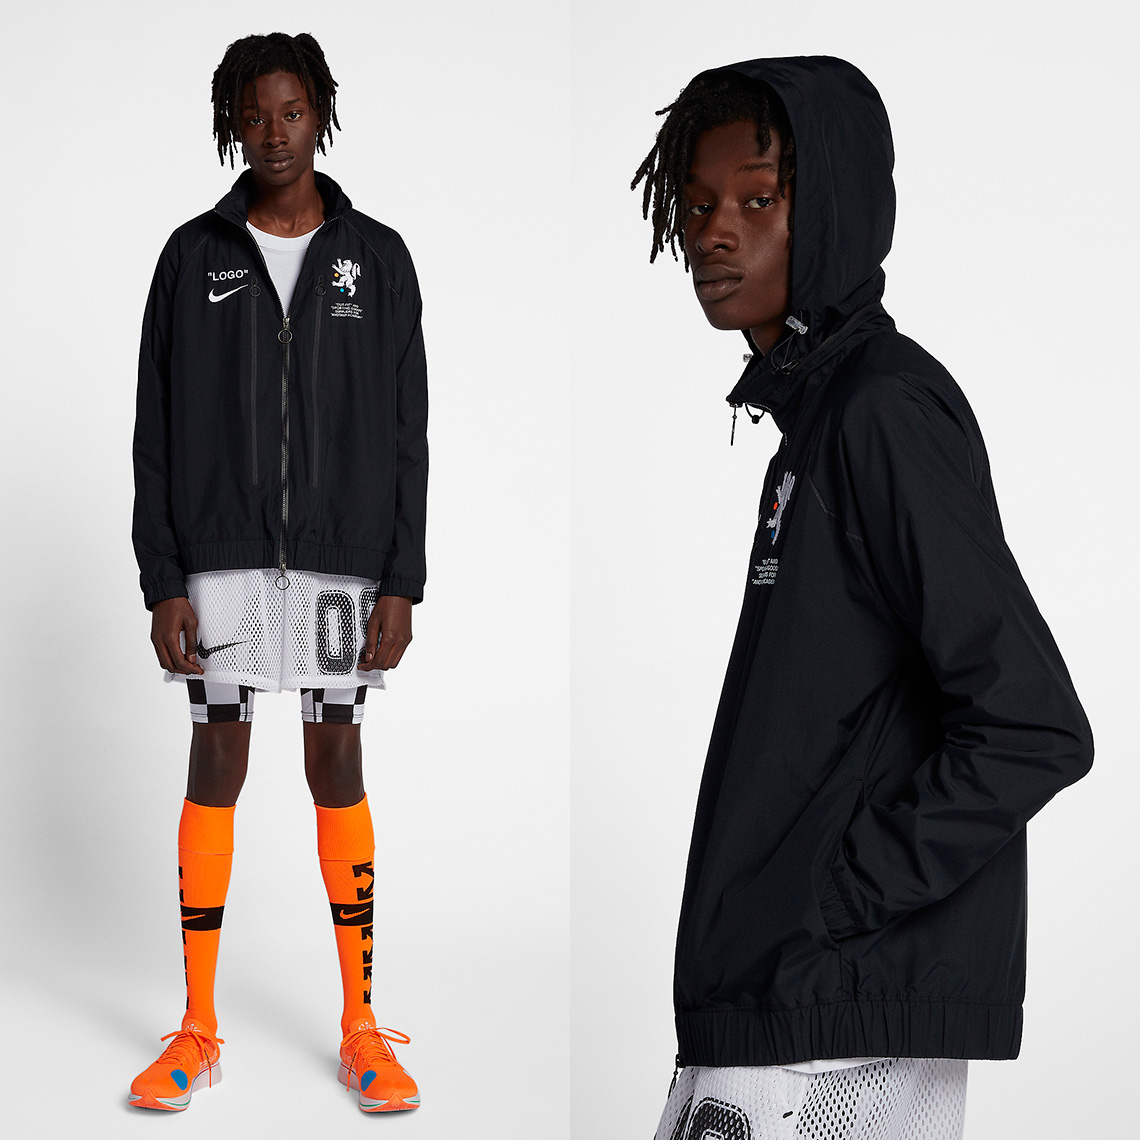 856a60d3 Nike x OFF WHITE Track Jacket Release Date: June 14, 2018. COMING SOON TO  Nike $250. Color: Black